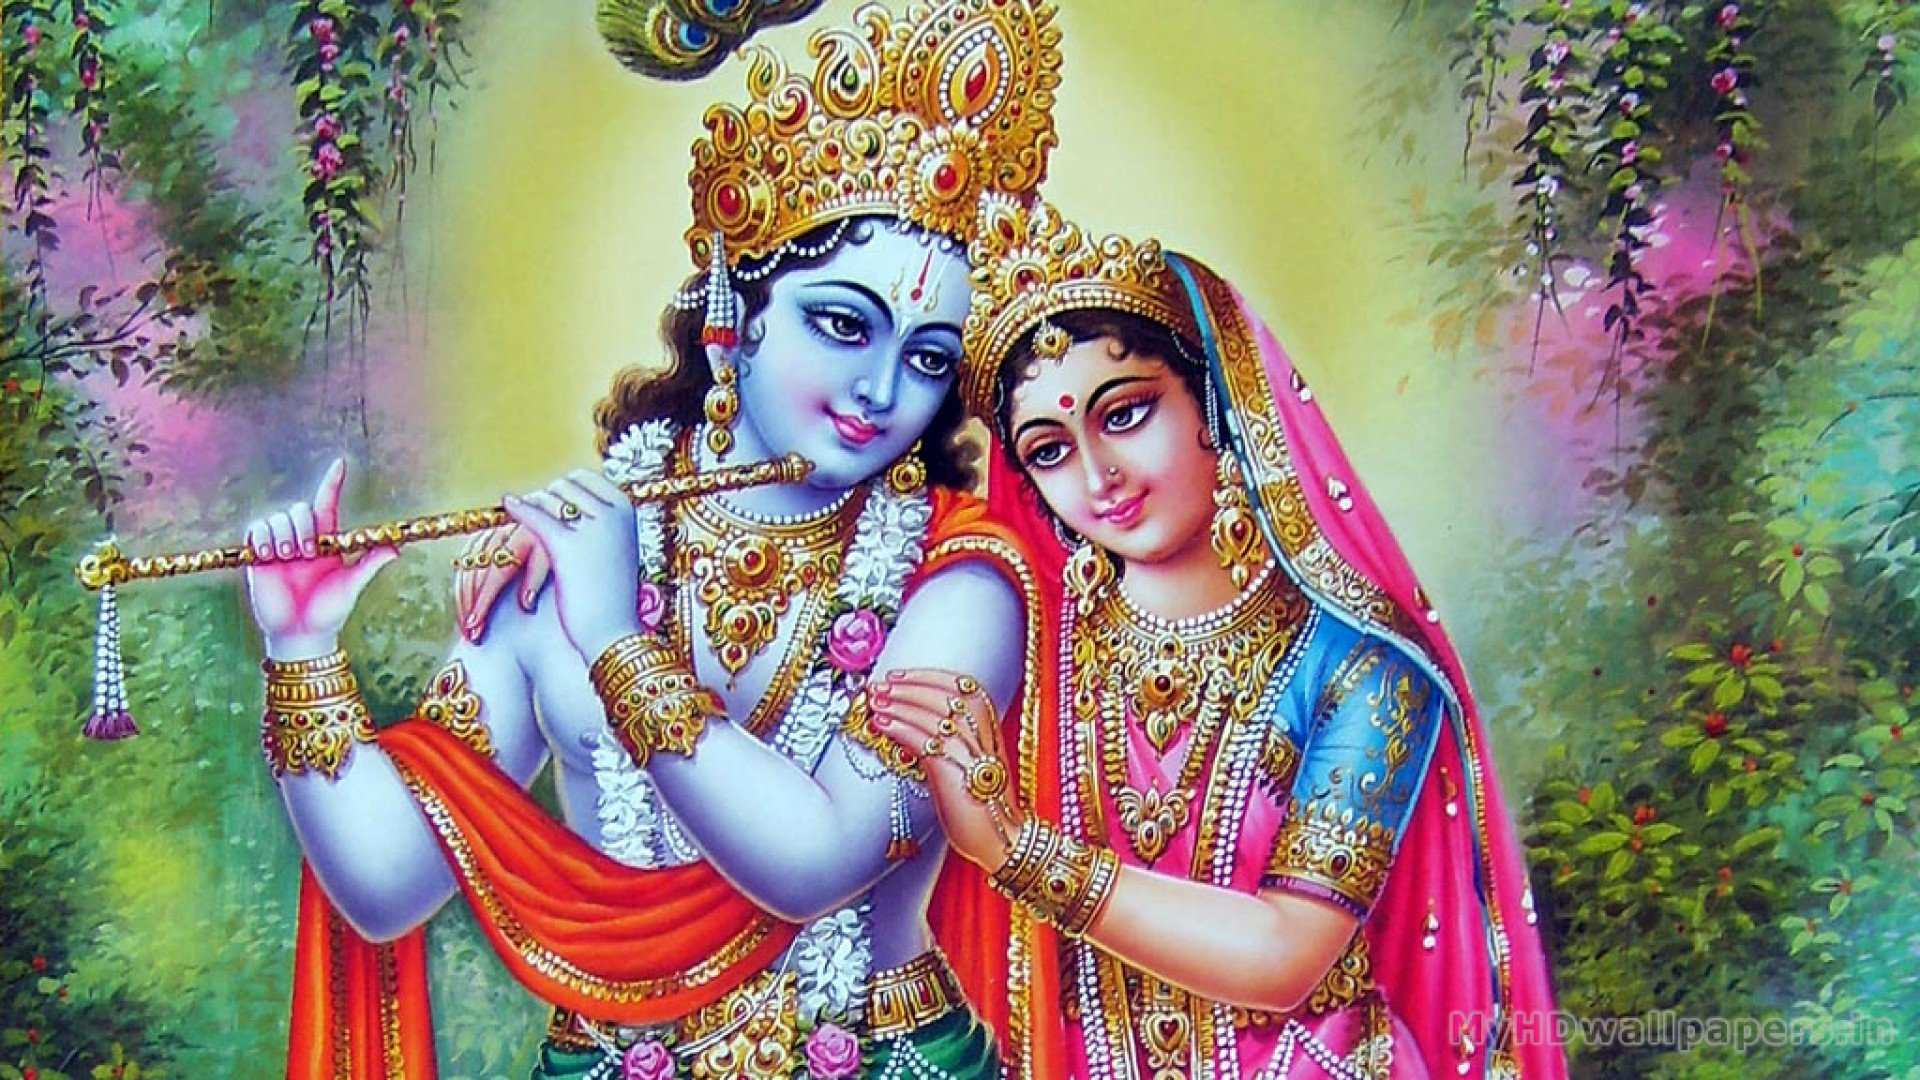 Radha Krishna Hd Wallpapers Wallpapersafari